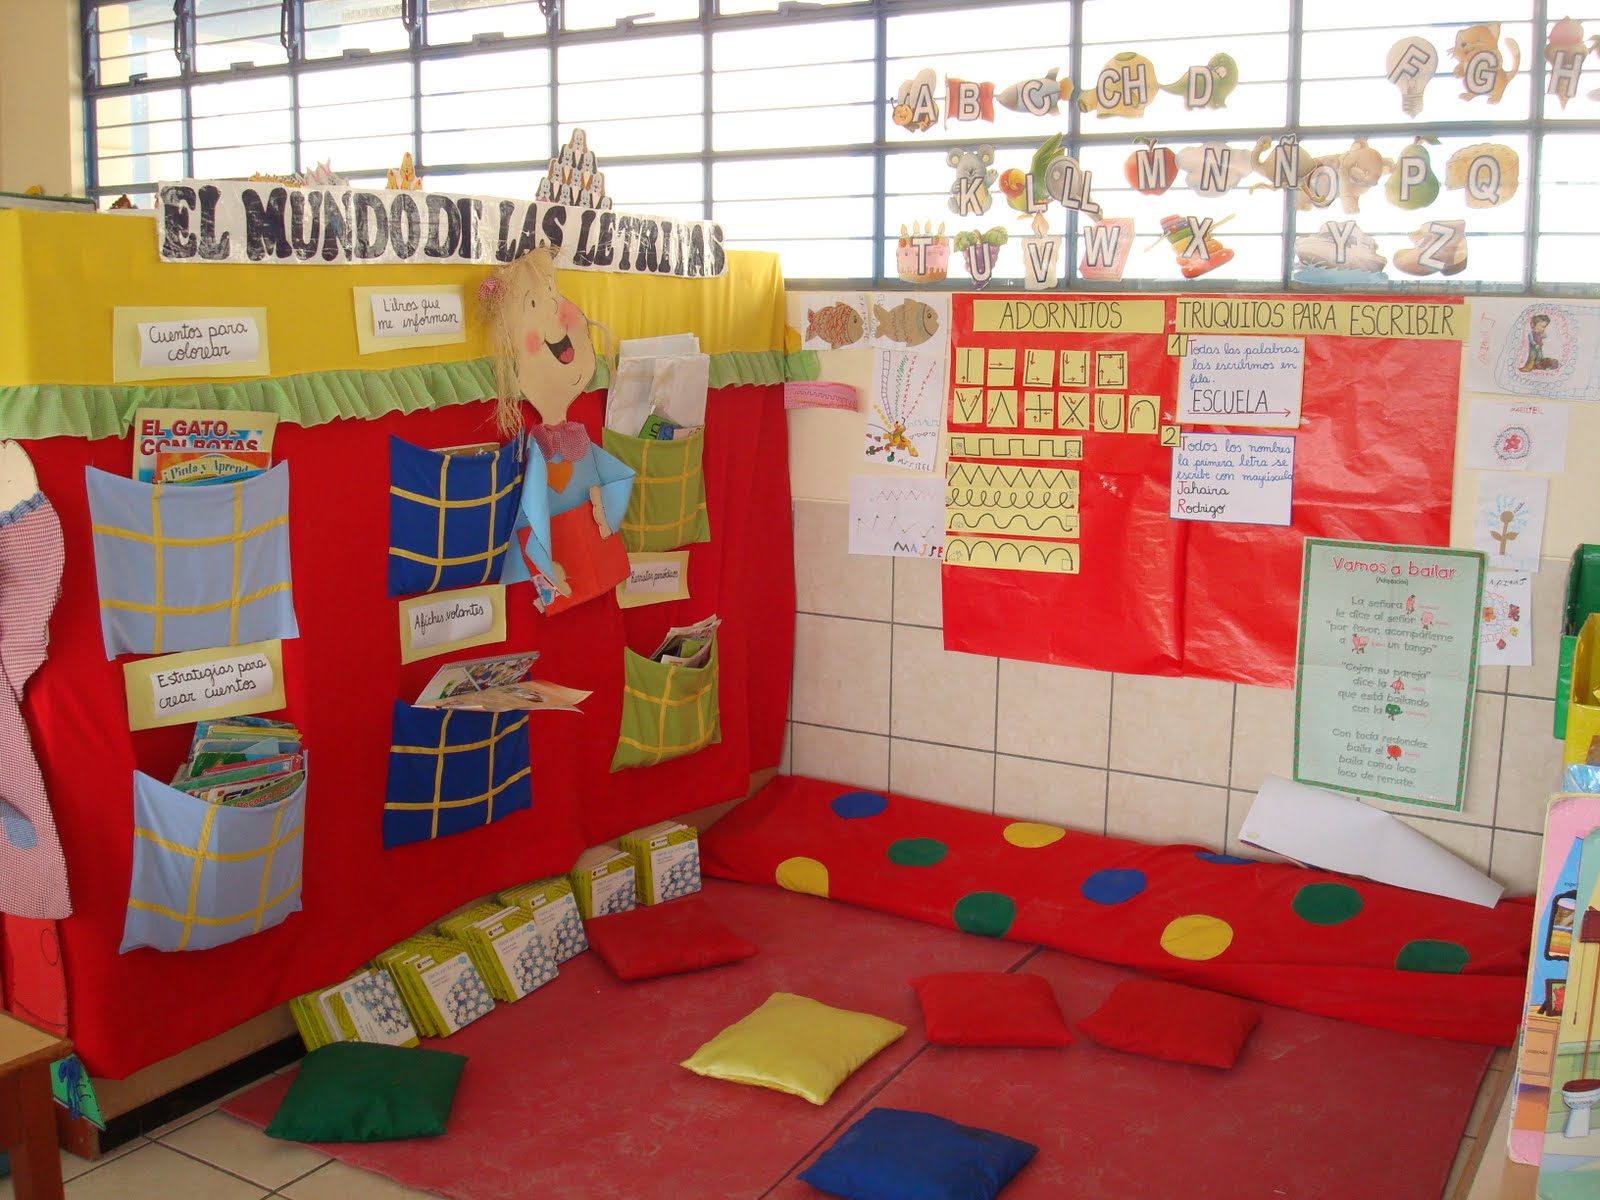 Decoracion salon de clases primaria for Clases de decoracion de interiores